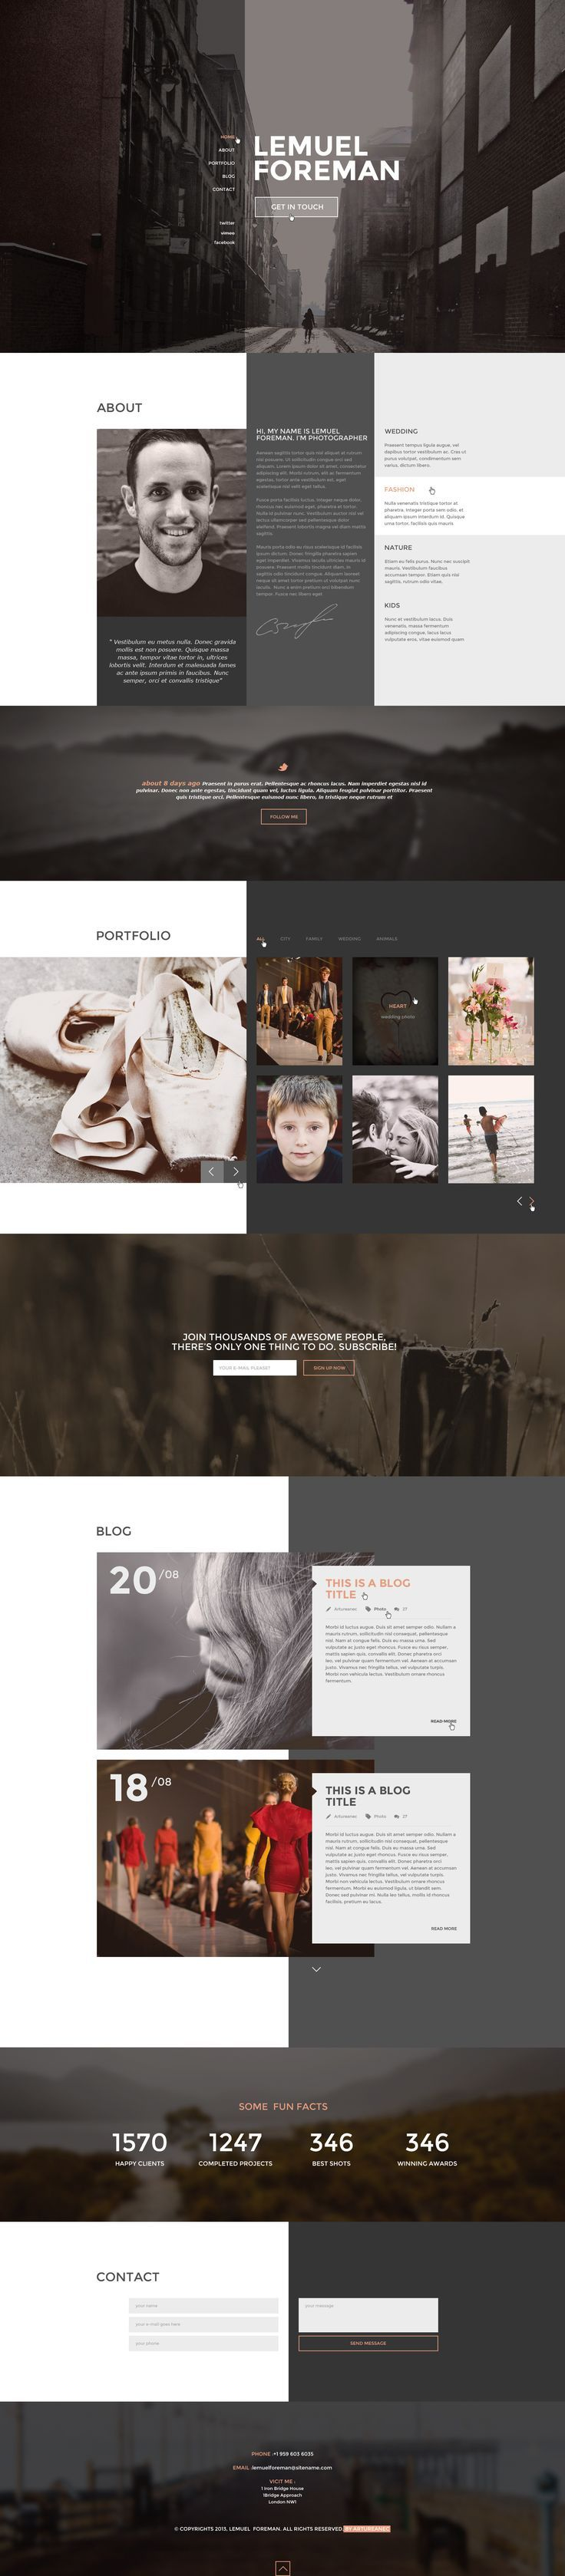 LF - One Page Multi Purpose Parallax HTML Theme #template: